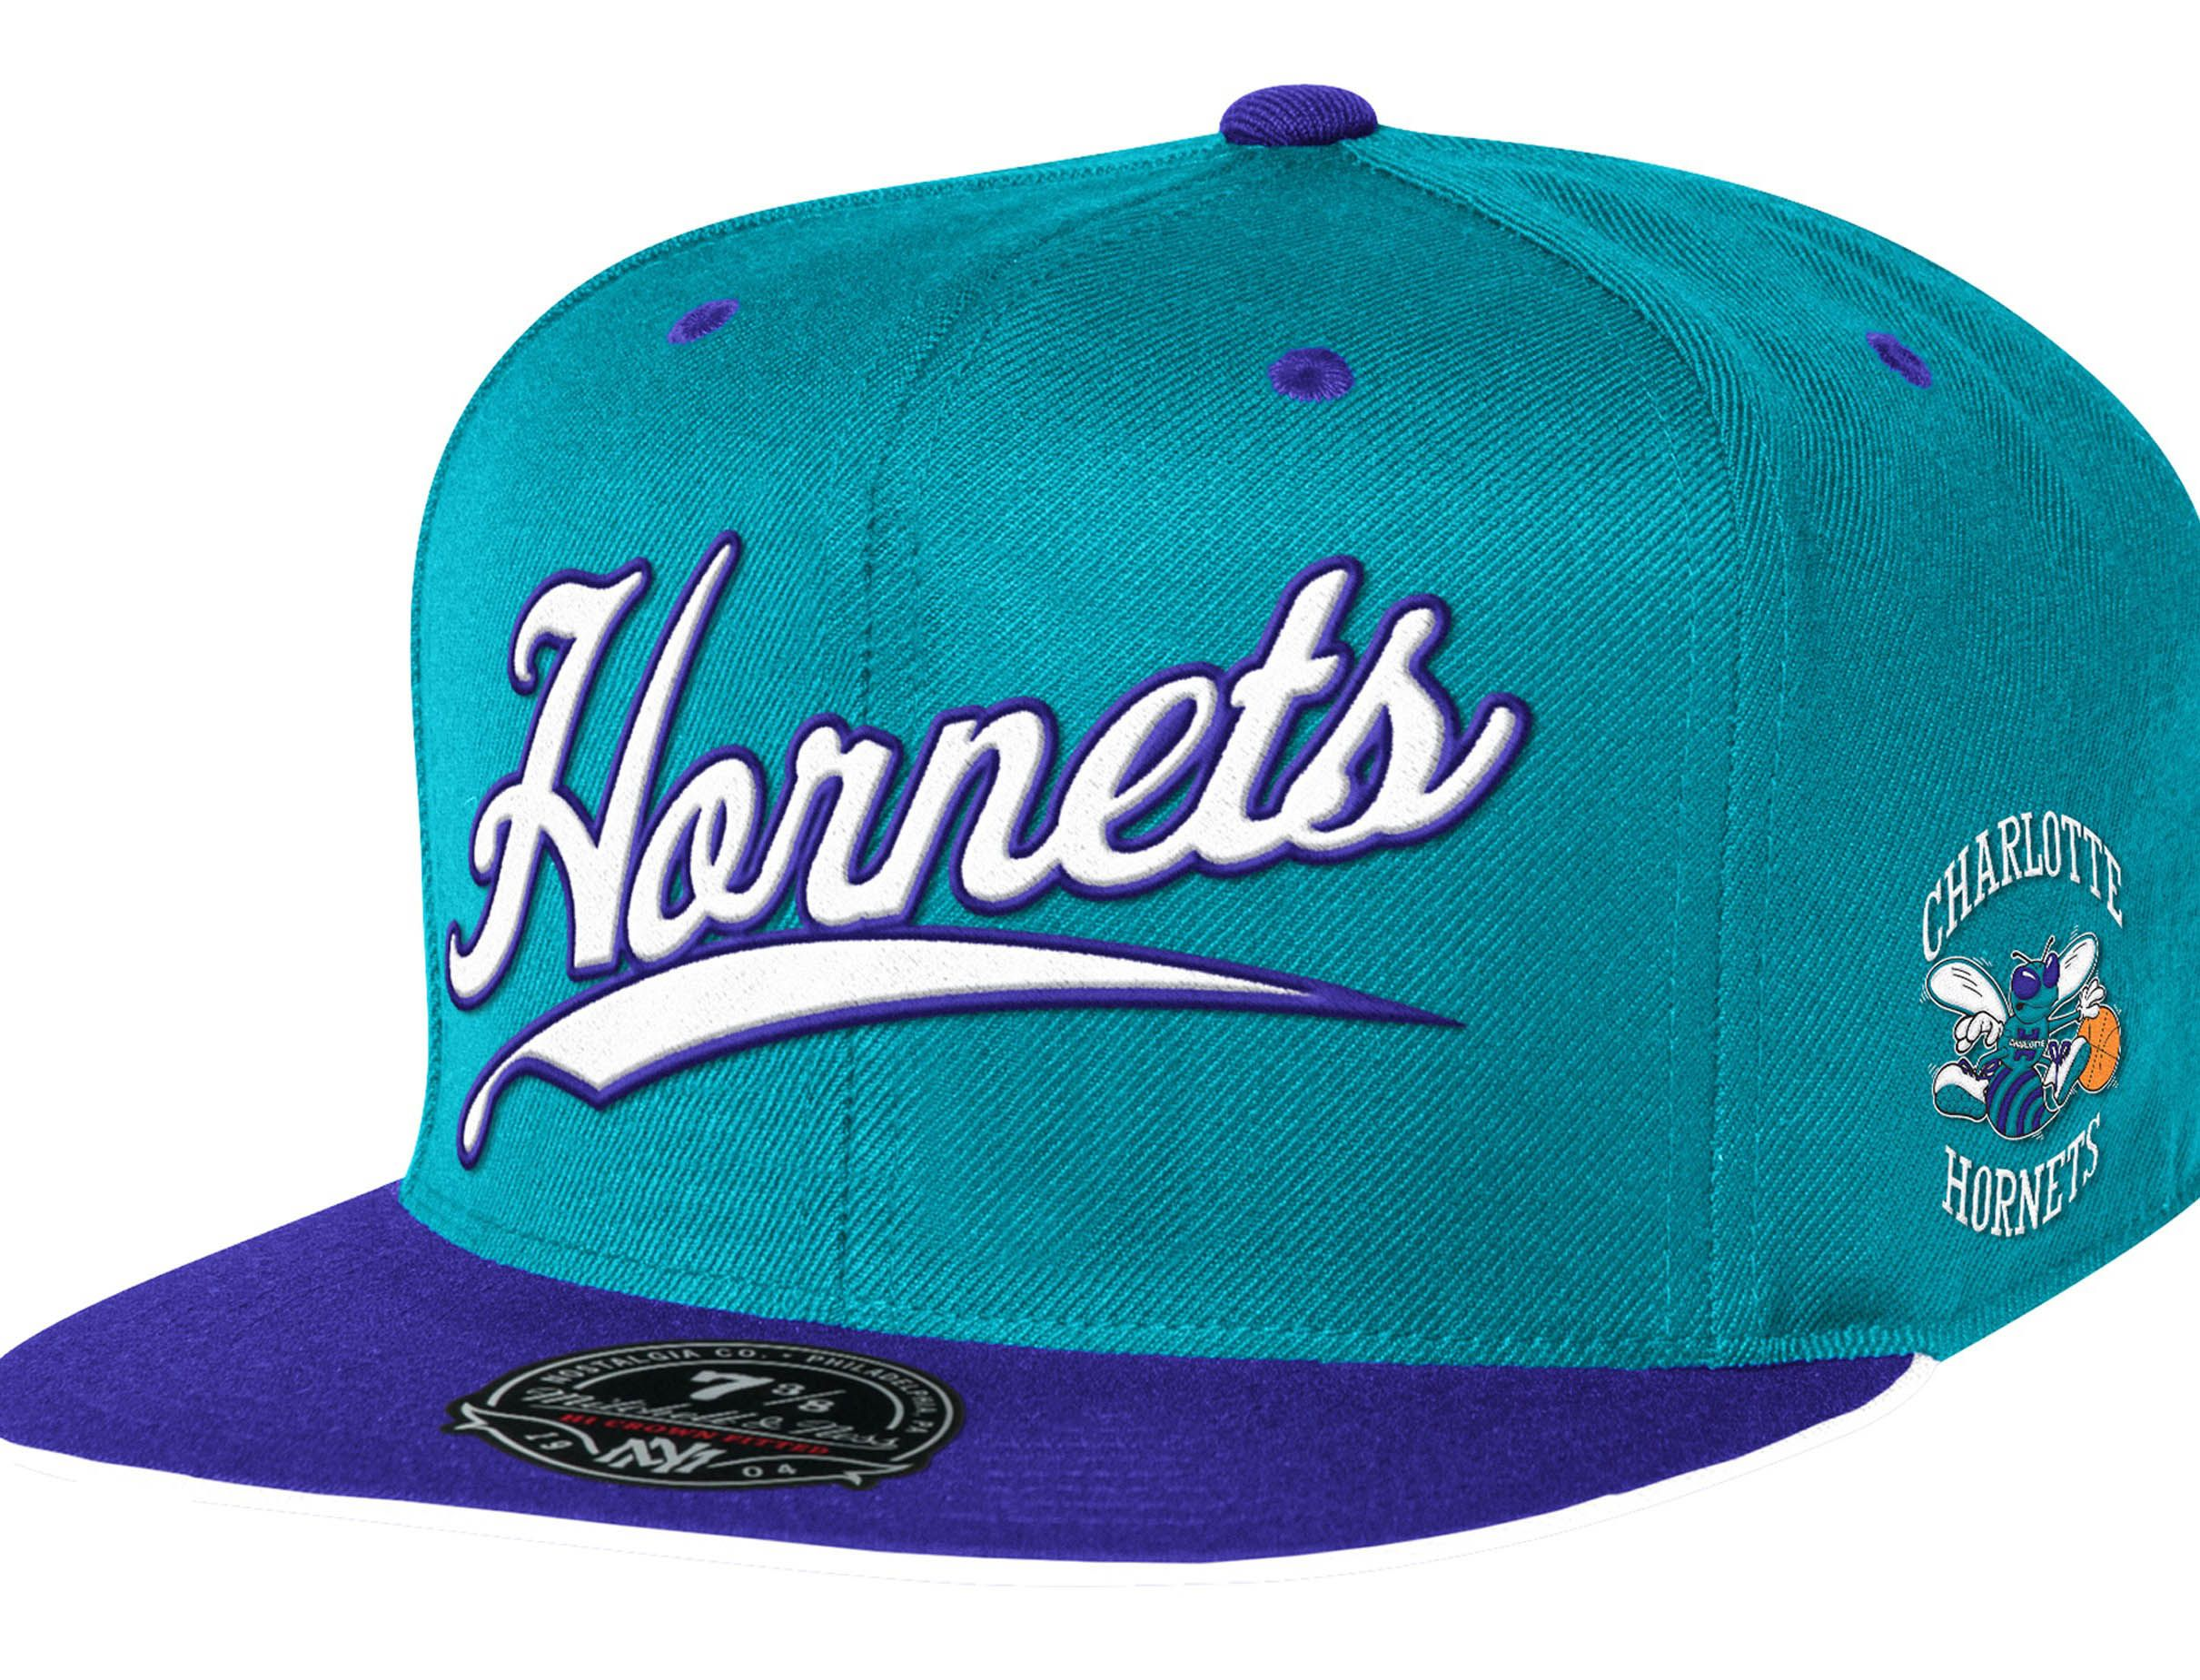 29c45c72 Charlotte Hornets Billboard Script High Crown Fitted Baseball Cap by  MITCHELL & NESS x NBA